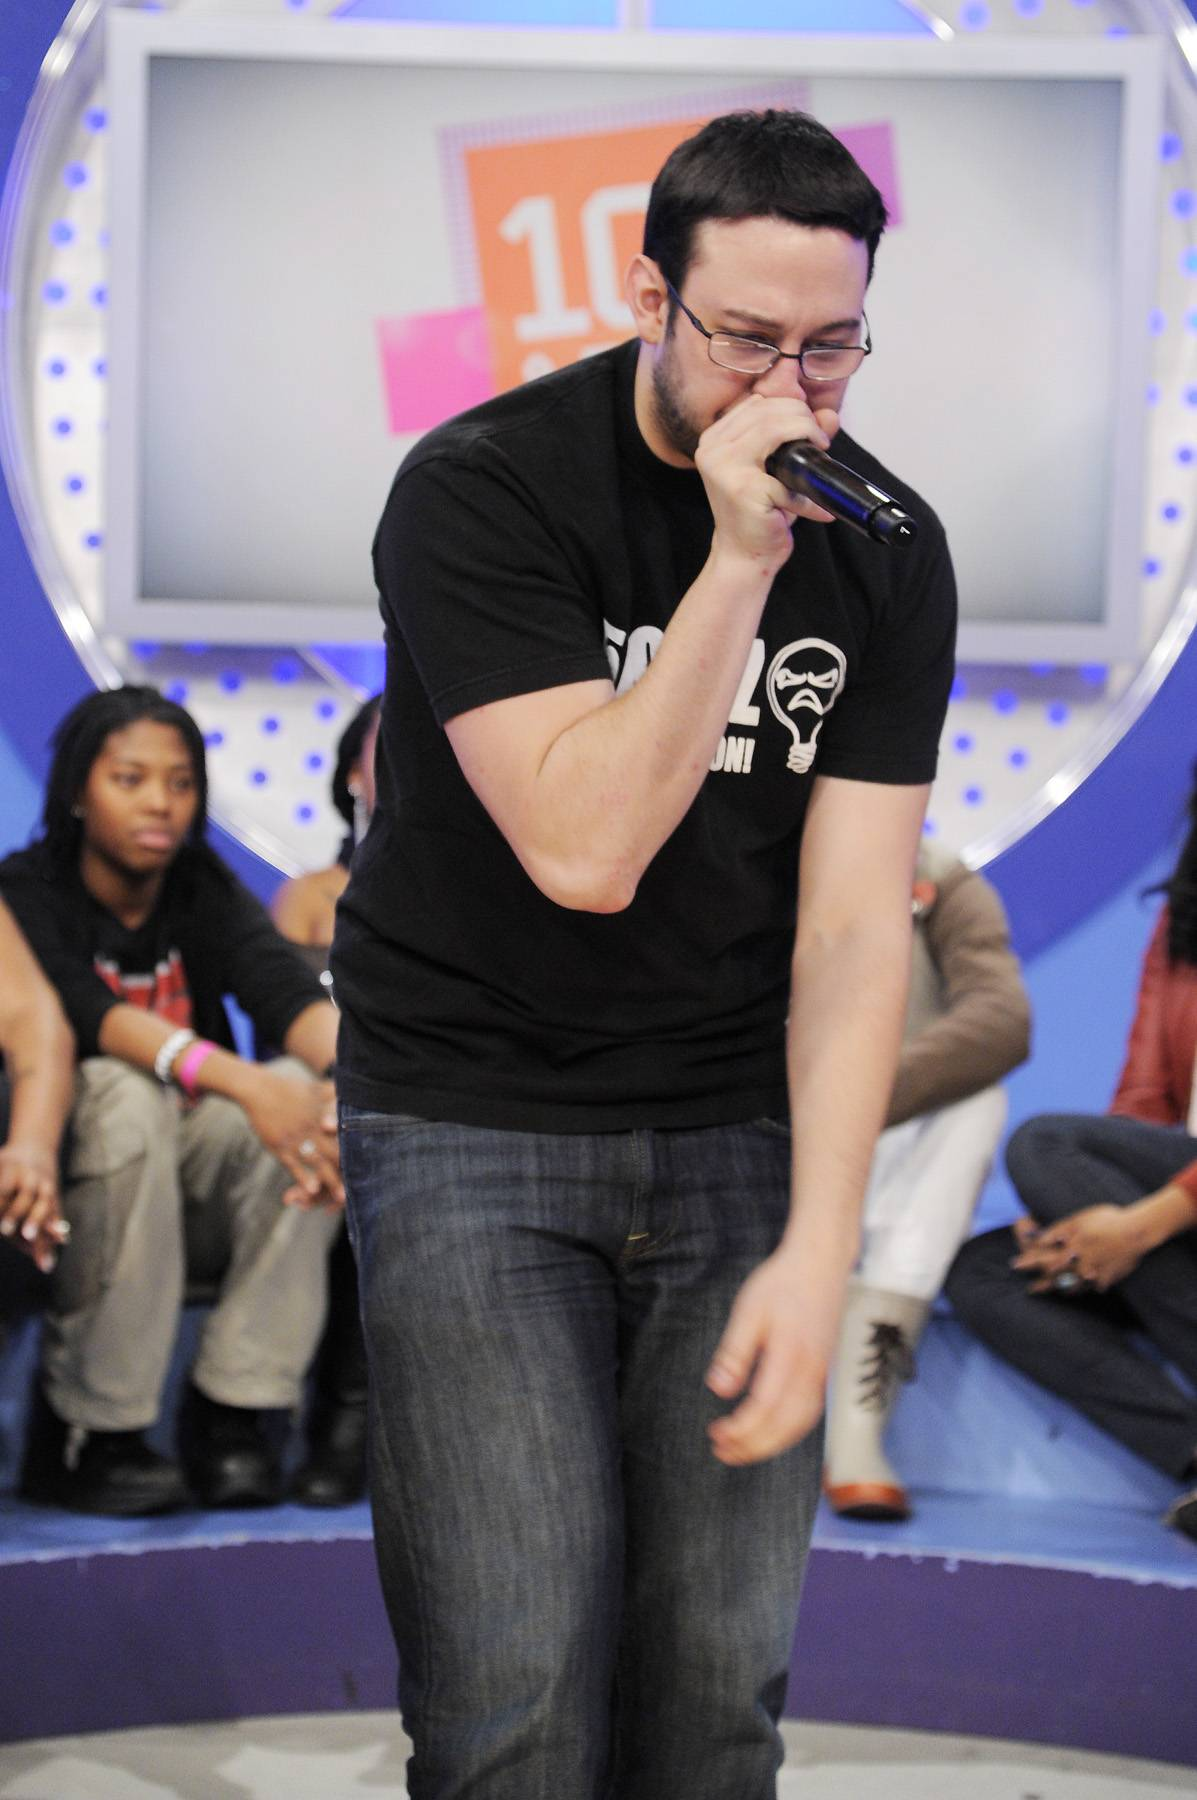 I Got This - Audience member performs for the crowd during commercial break at 106 & Park, January 12, 2012. (Photo: John Ricard / BET)